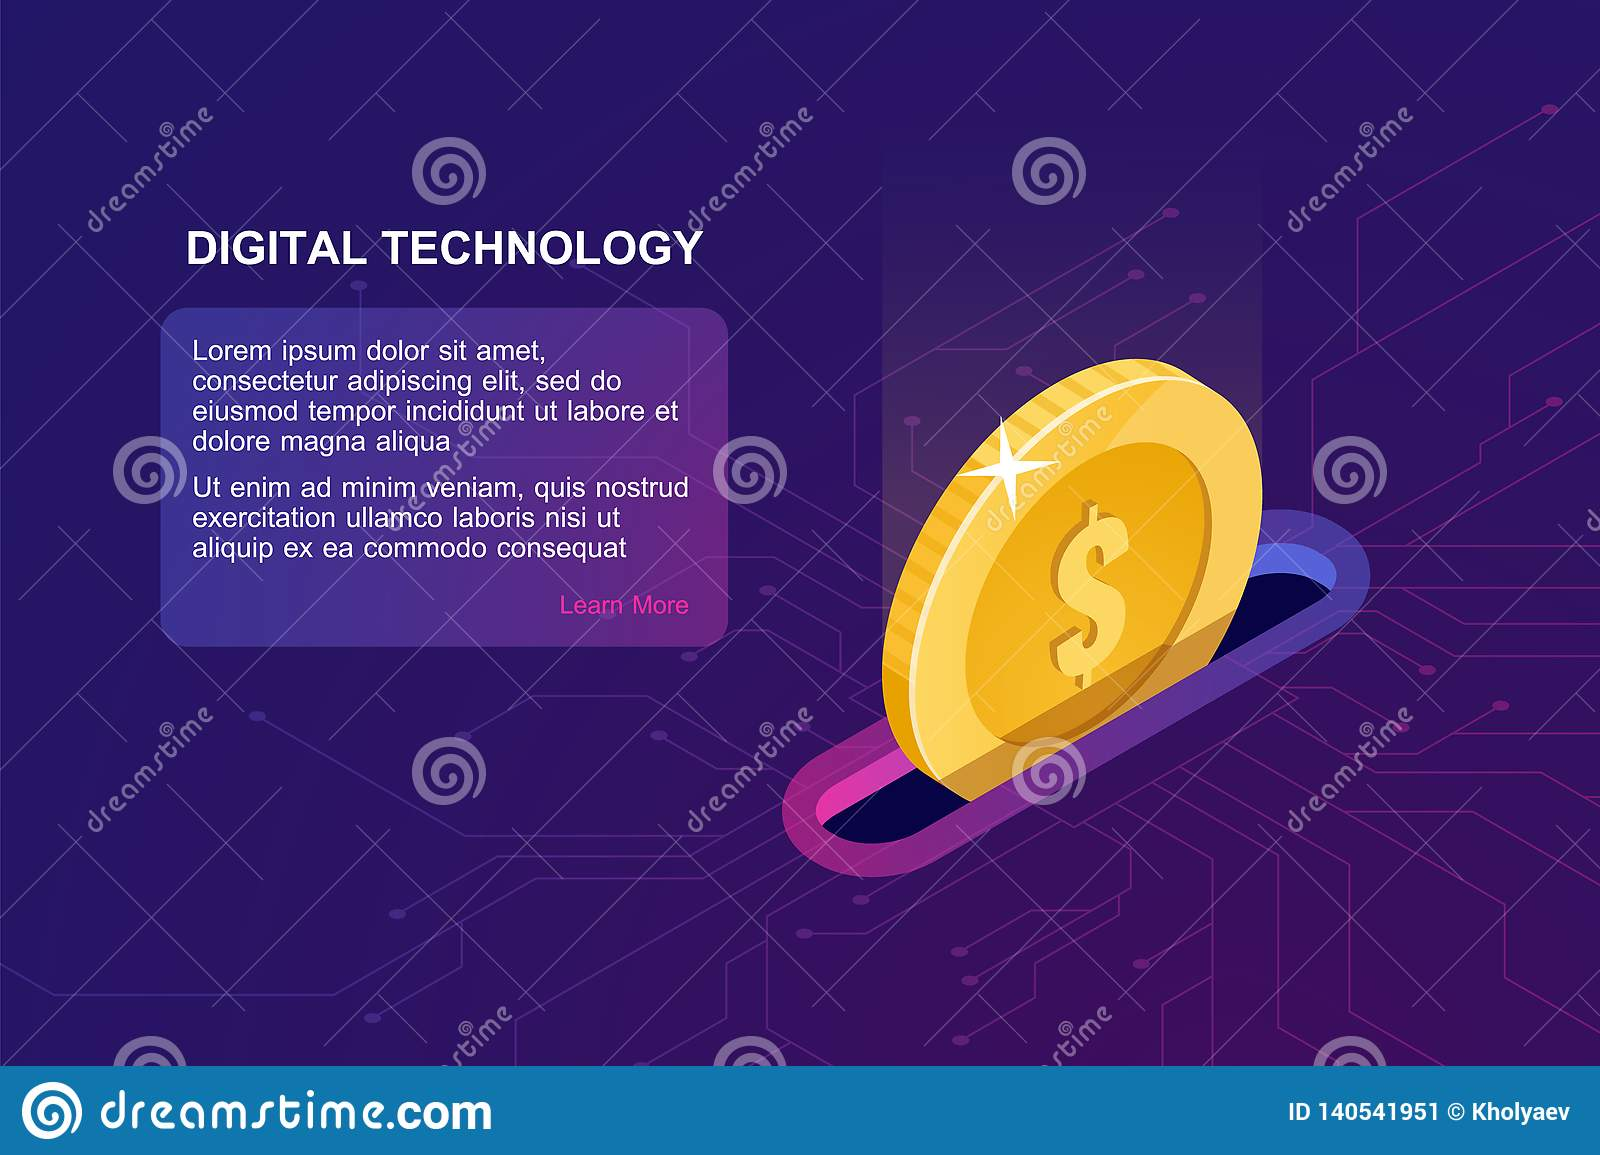 Digital banking online, isometric icon of falling coin, electronic internet purse, financial management online service